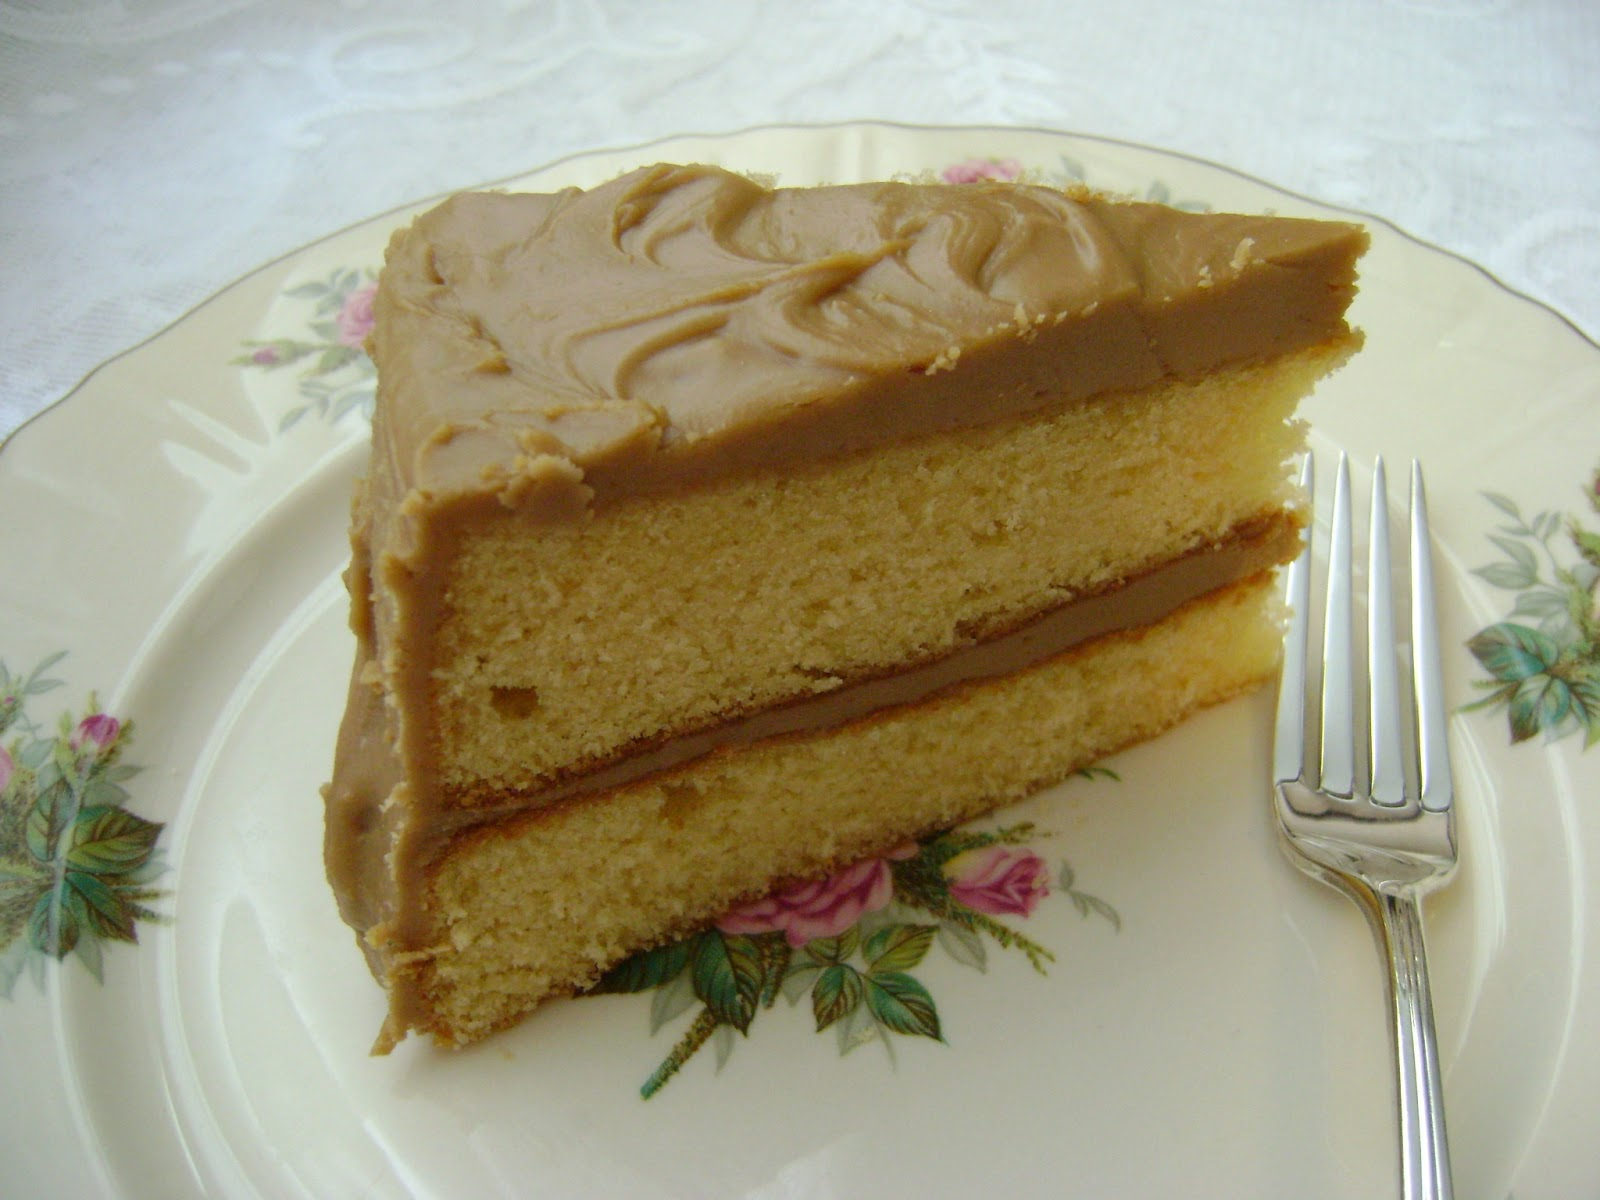 A Sunflower Life: Old Fashioned Caramel Cake for #SundaySupper